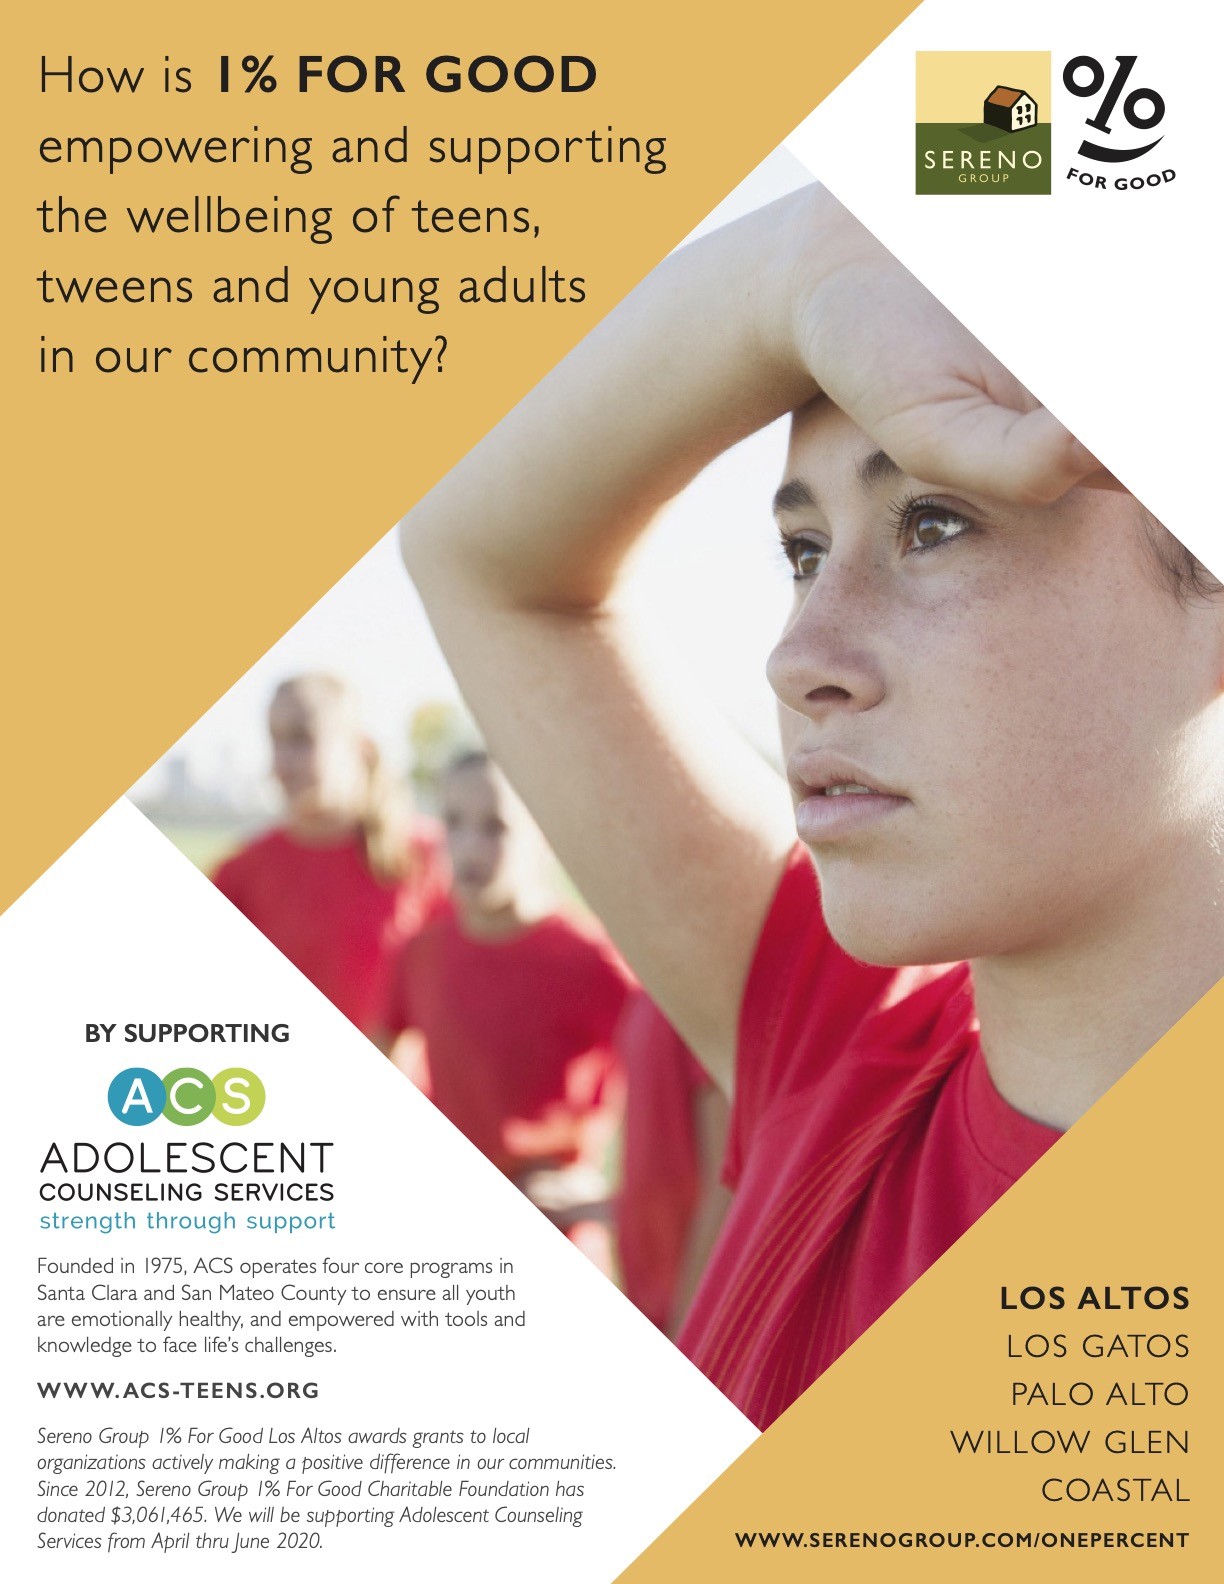 Sereno_OnePercent_LA_AdolescentCounselingServices_OfficePrint